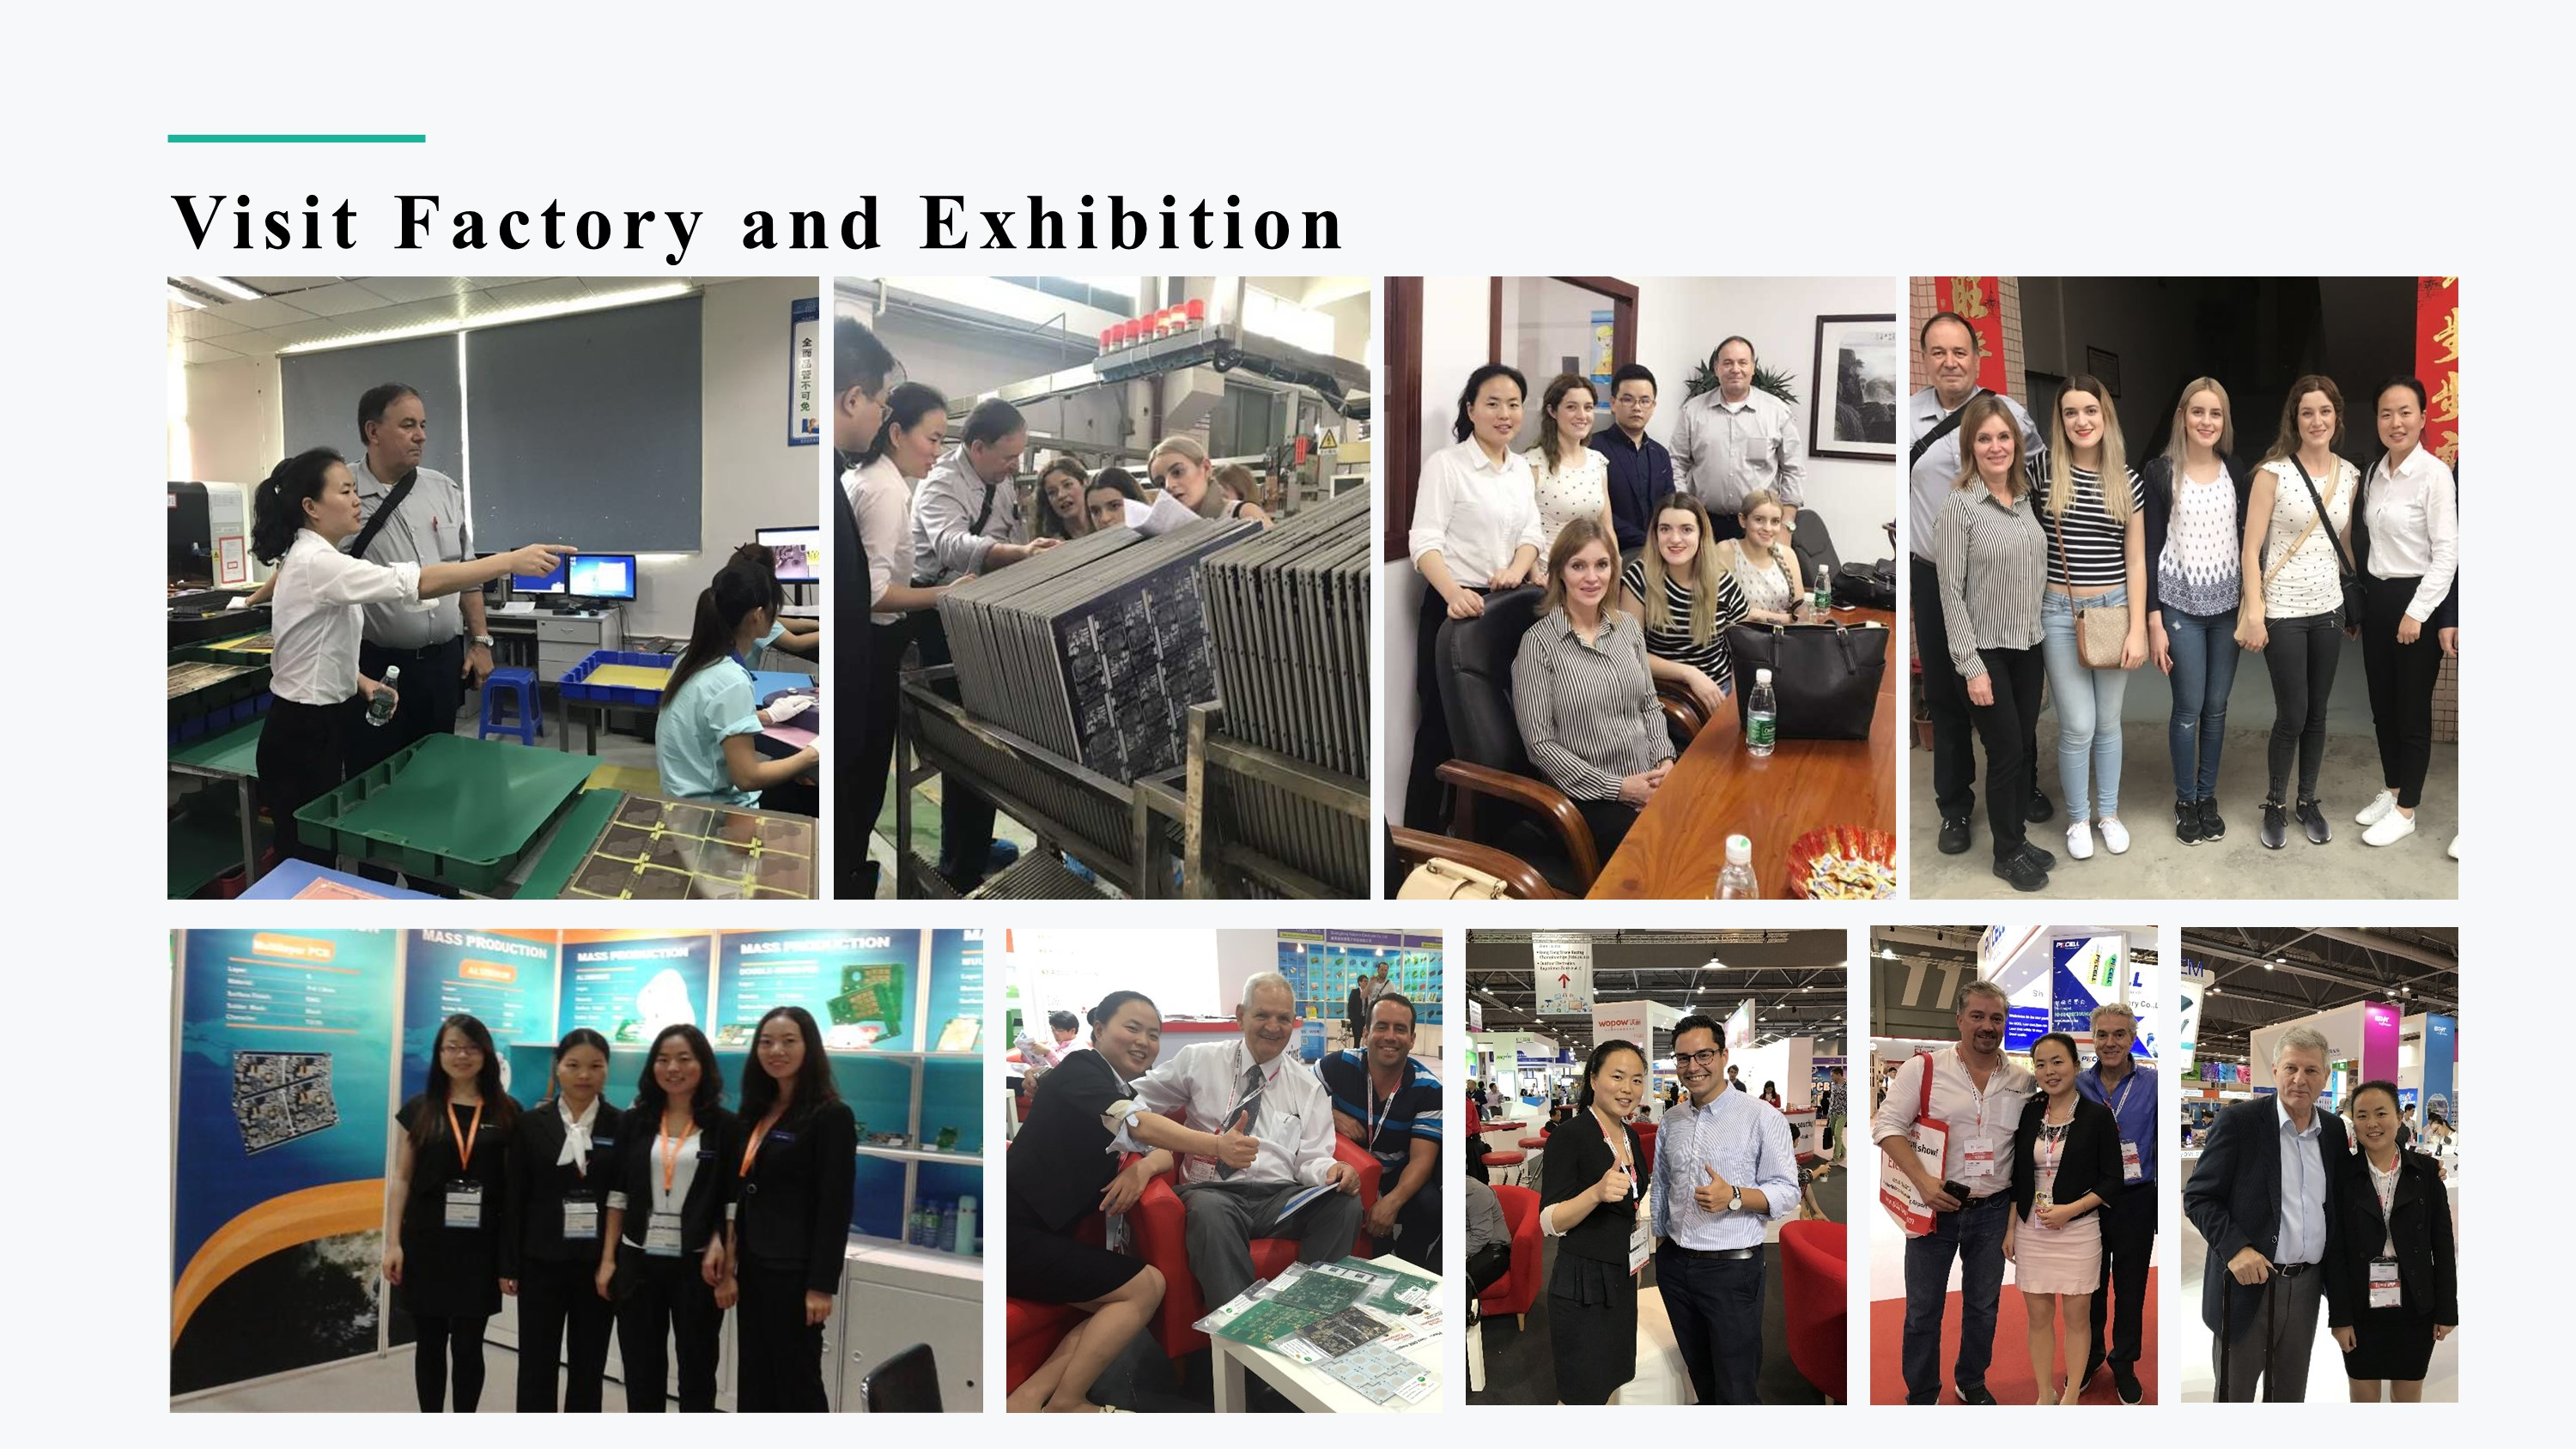 Visit Factory and Exhibition